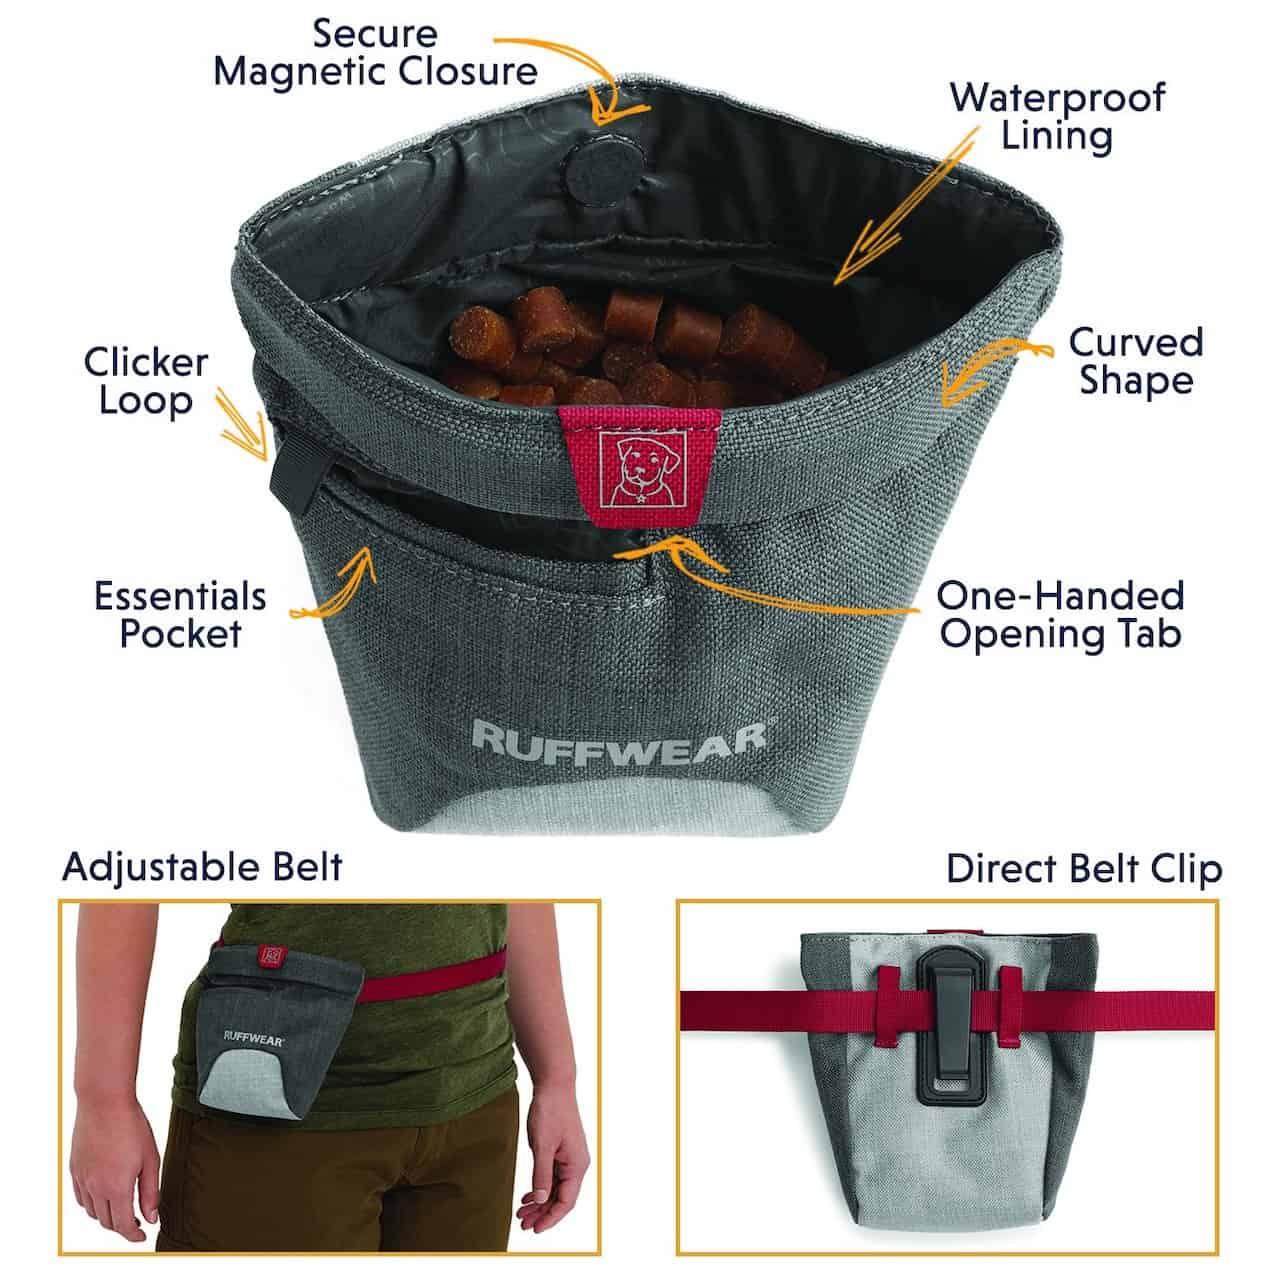 Treat Trader - Waist Worn Treat Bag